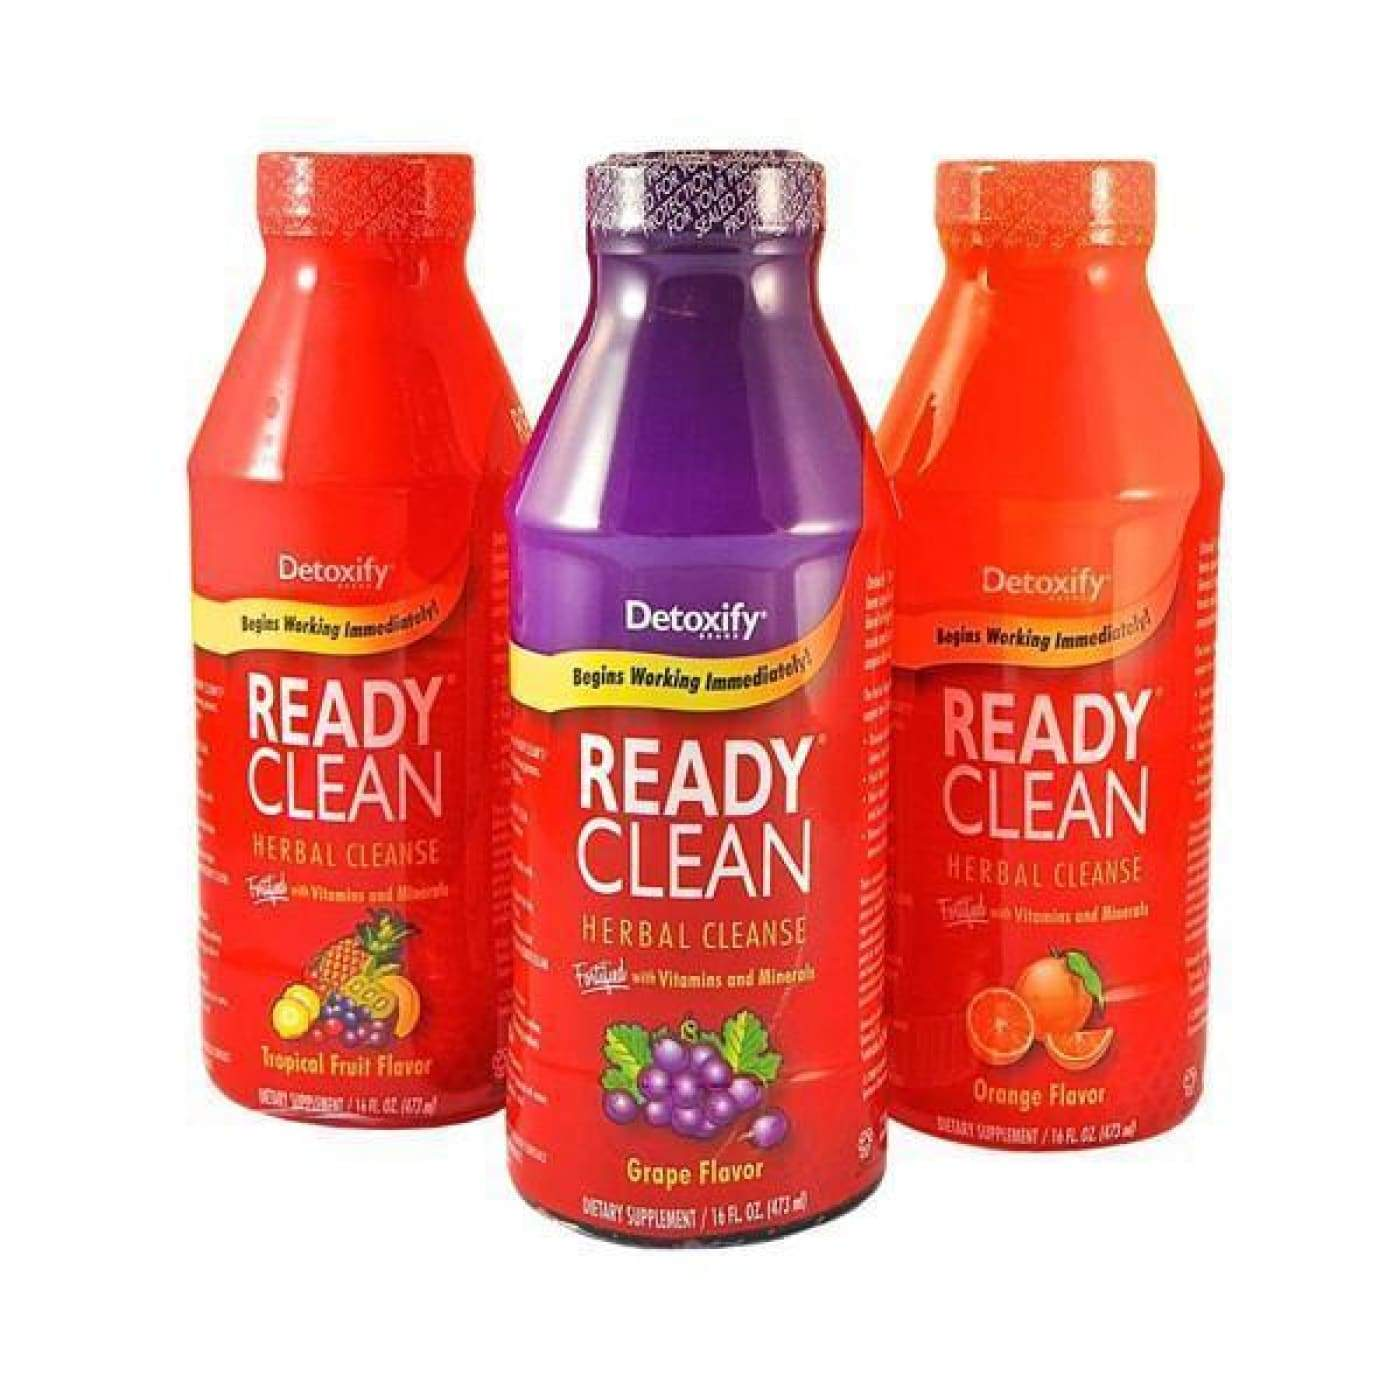 Detoxify Ready Clean 16oz.